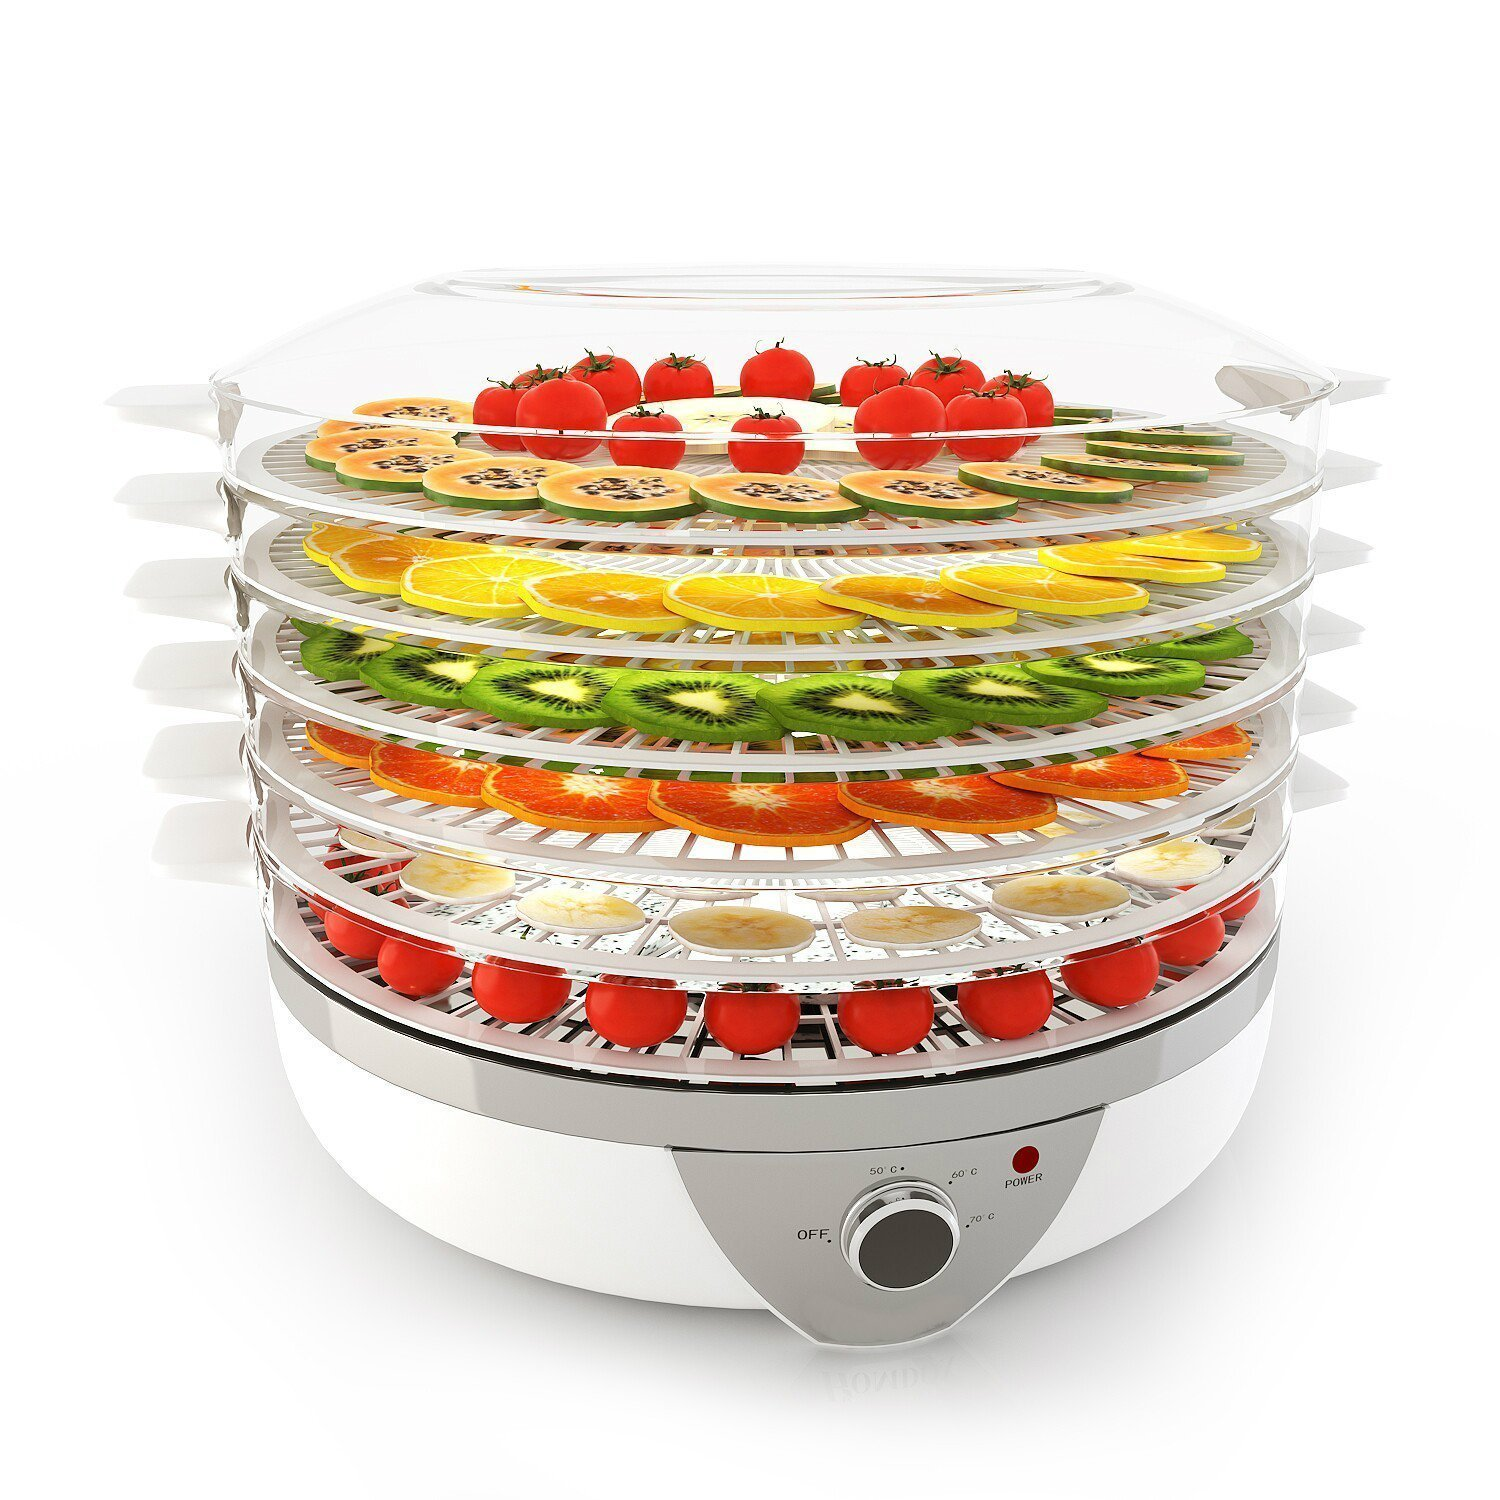 Meykey Food Dehydrator with Temperature Controller, Fruit-Meat Dryer, 5 Tray Digital Dehydrator, BPA-Free, 250W/LCD